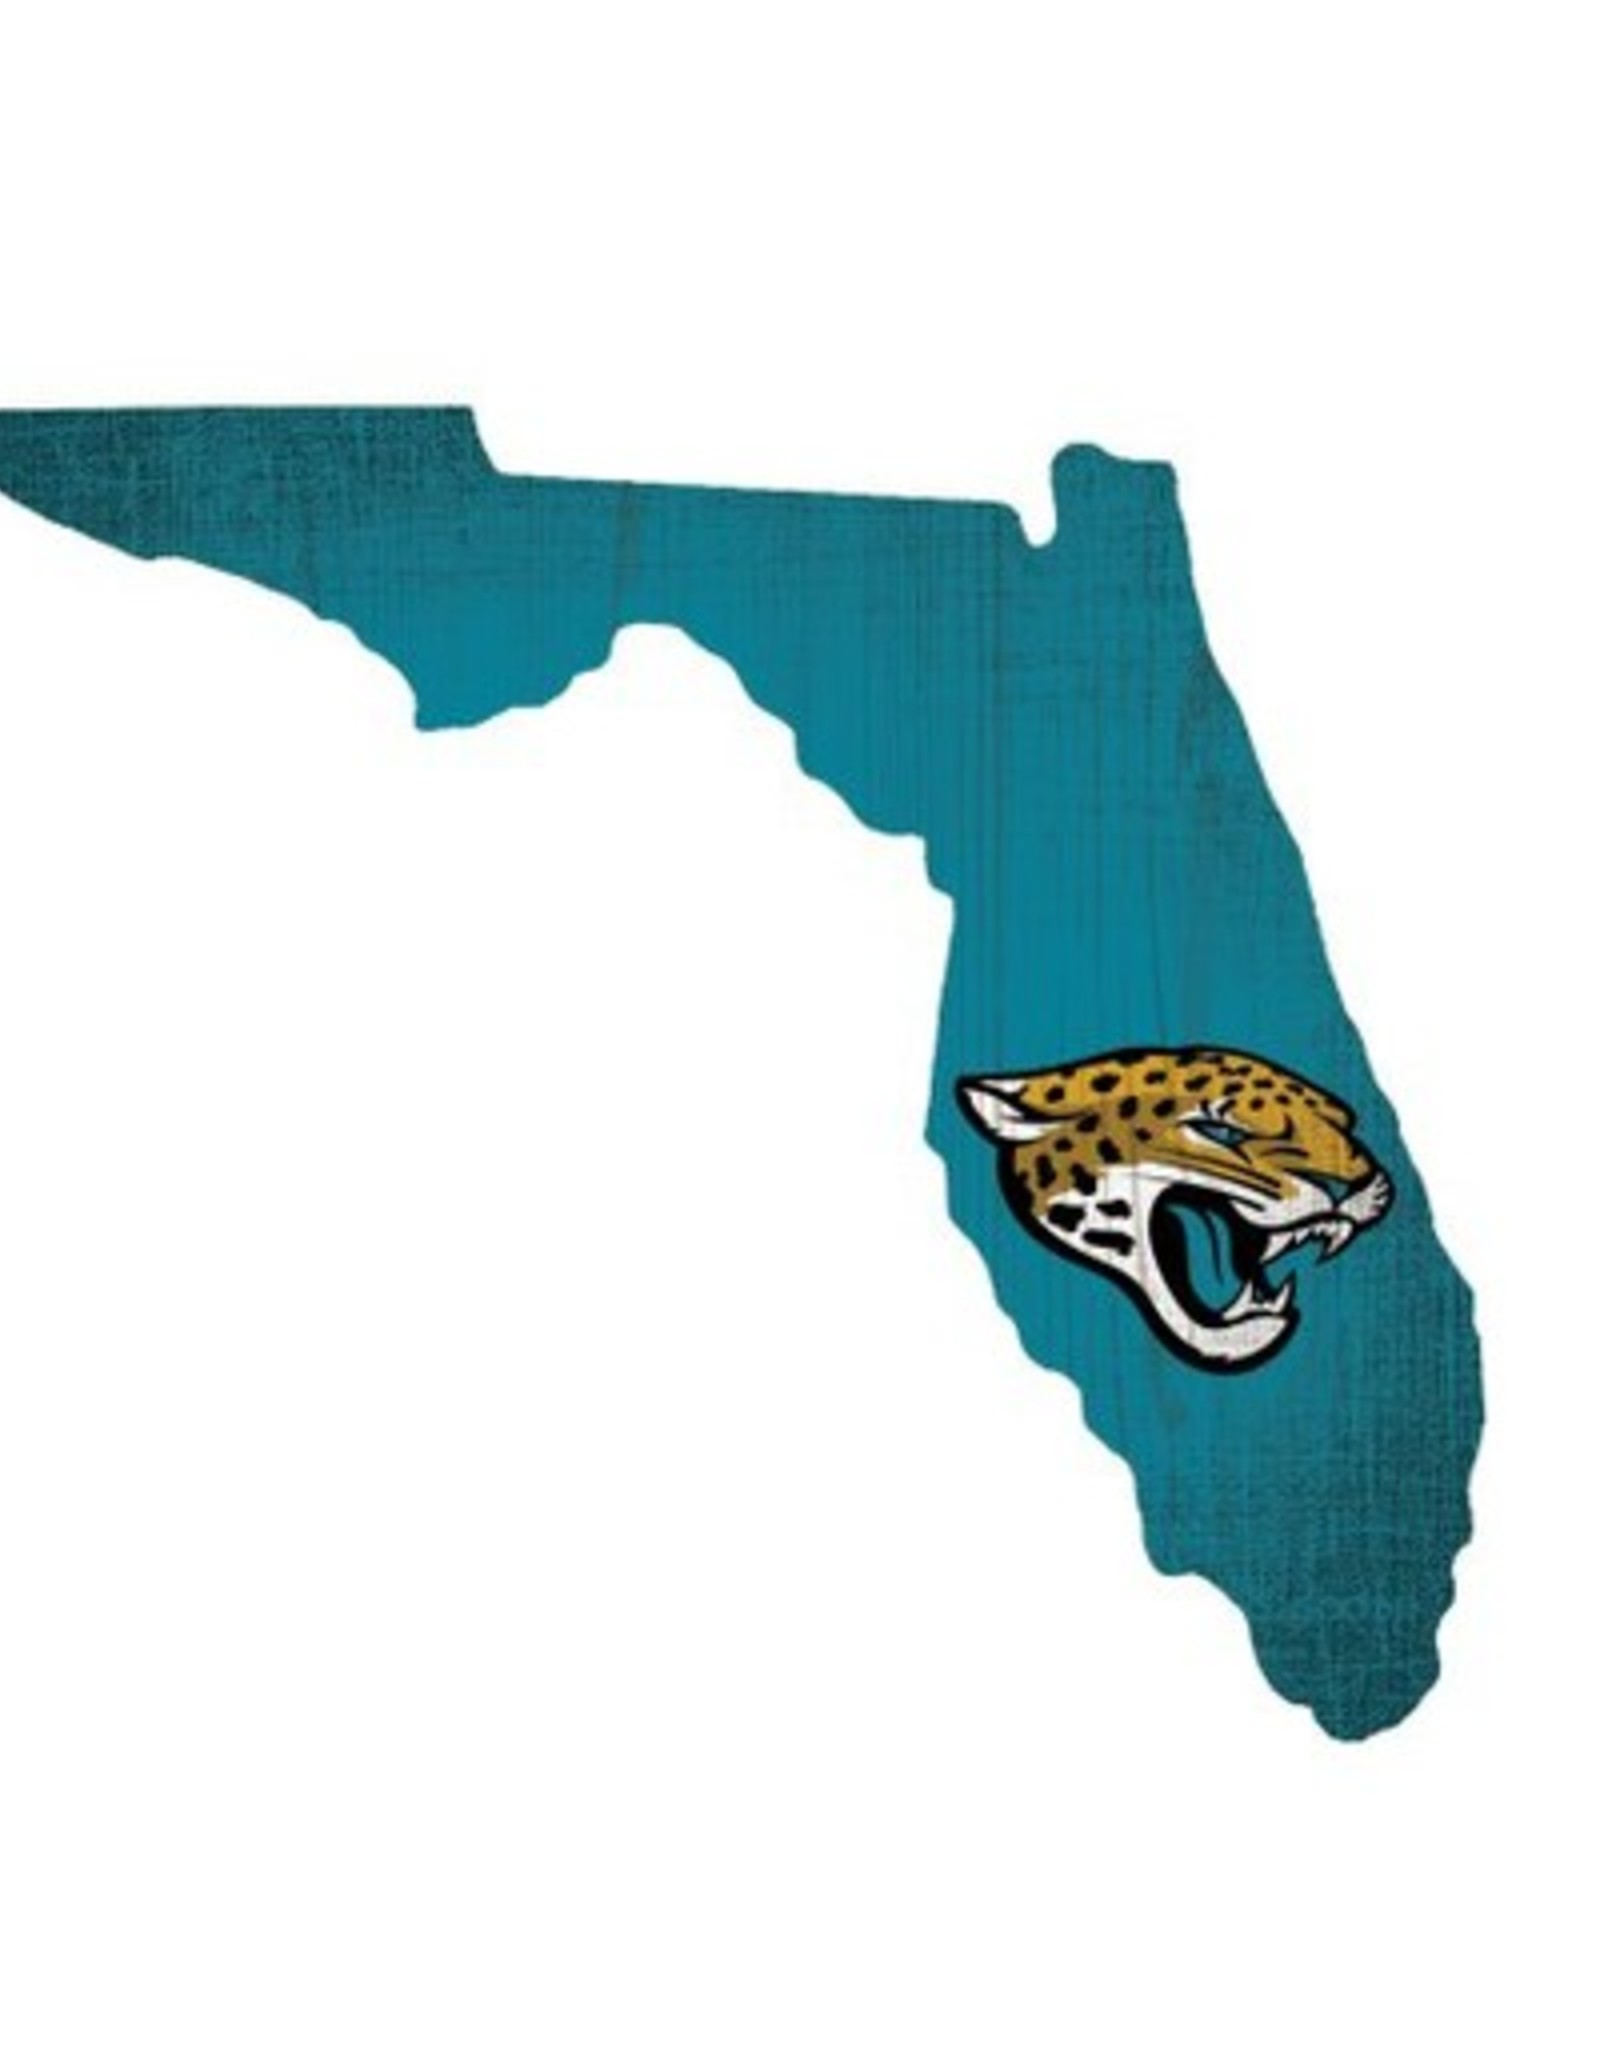 FAN CREATIONS Jacksonville Jaguars Team Logo State Sign